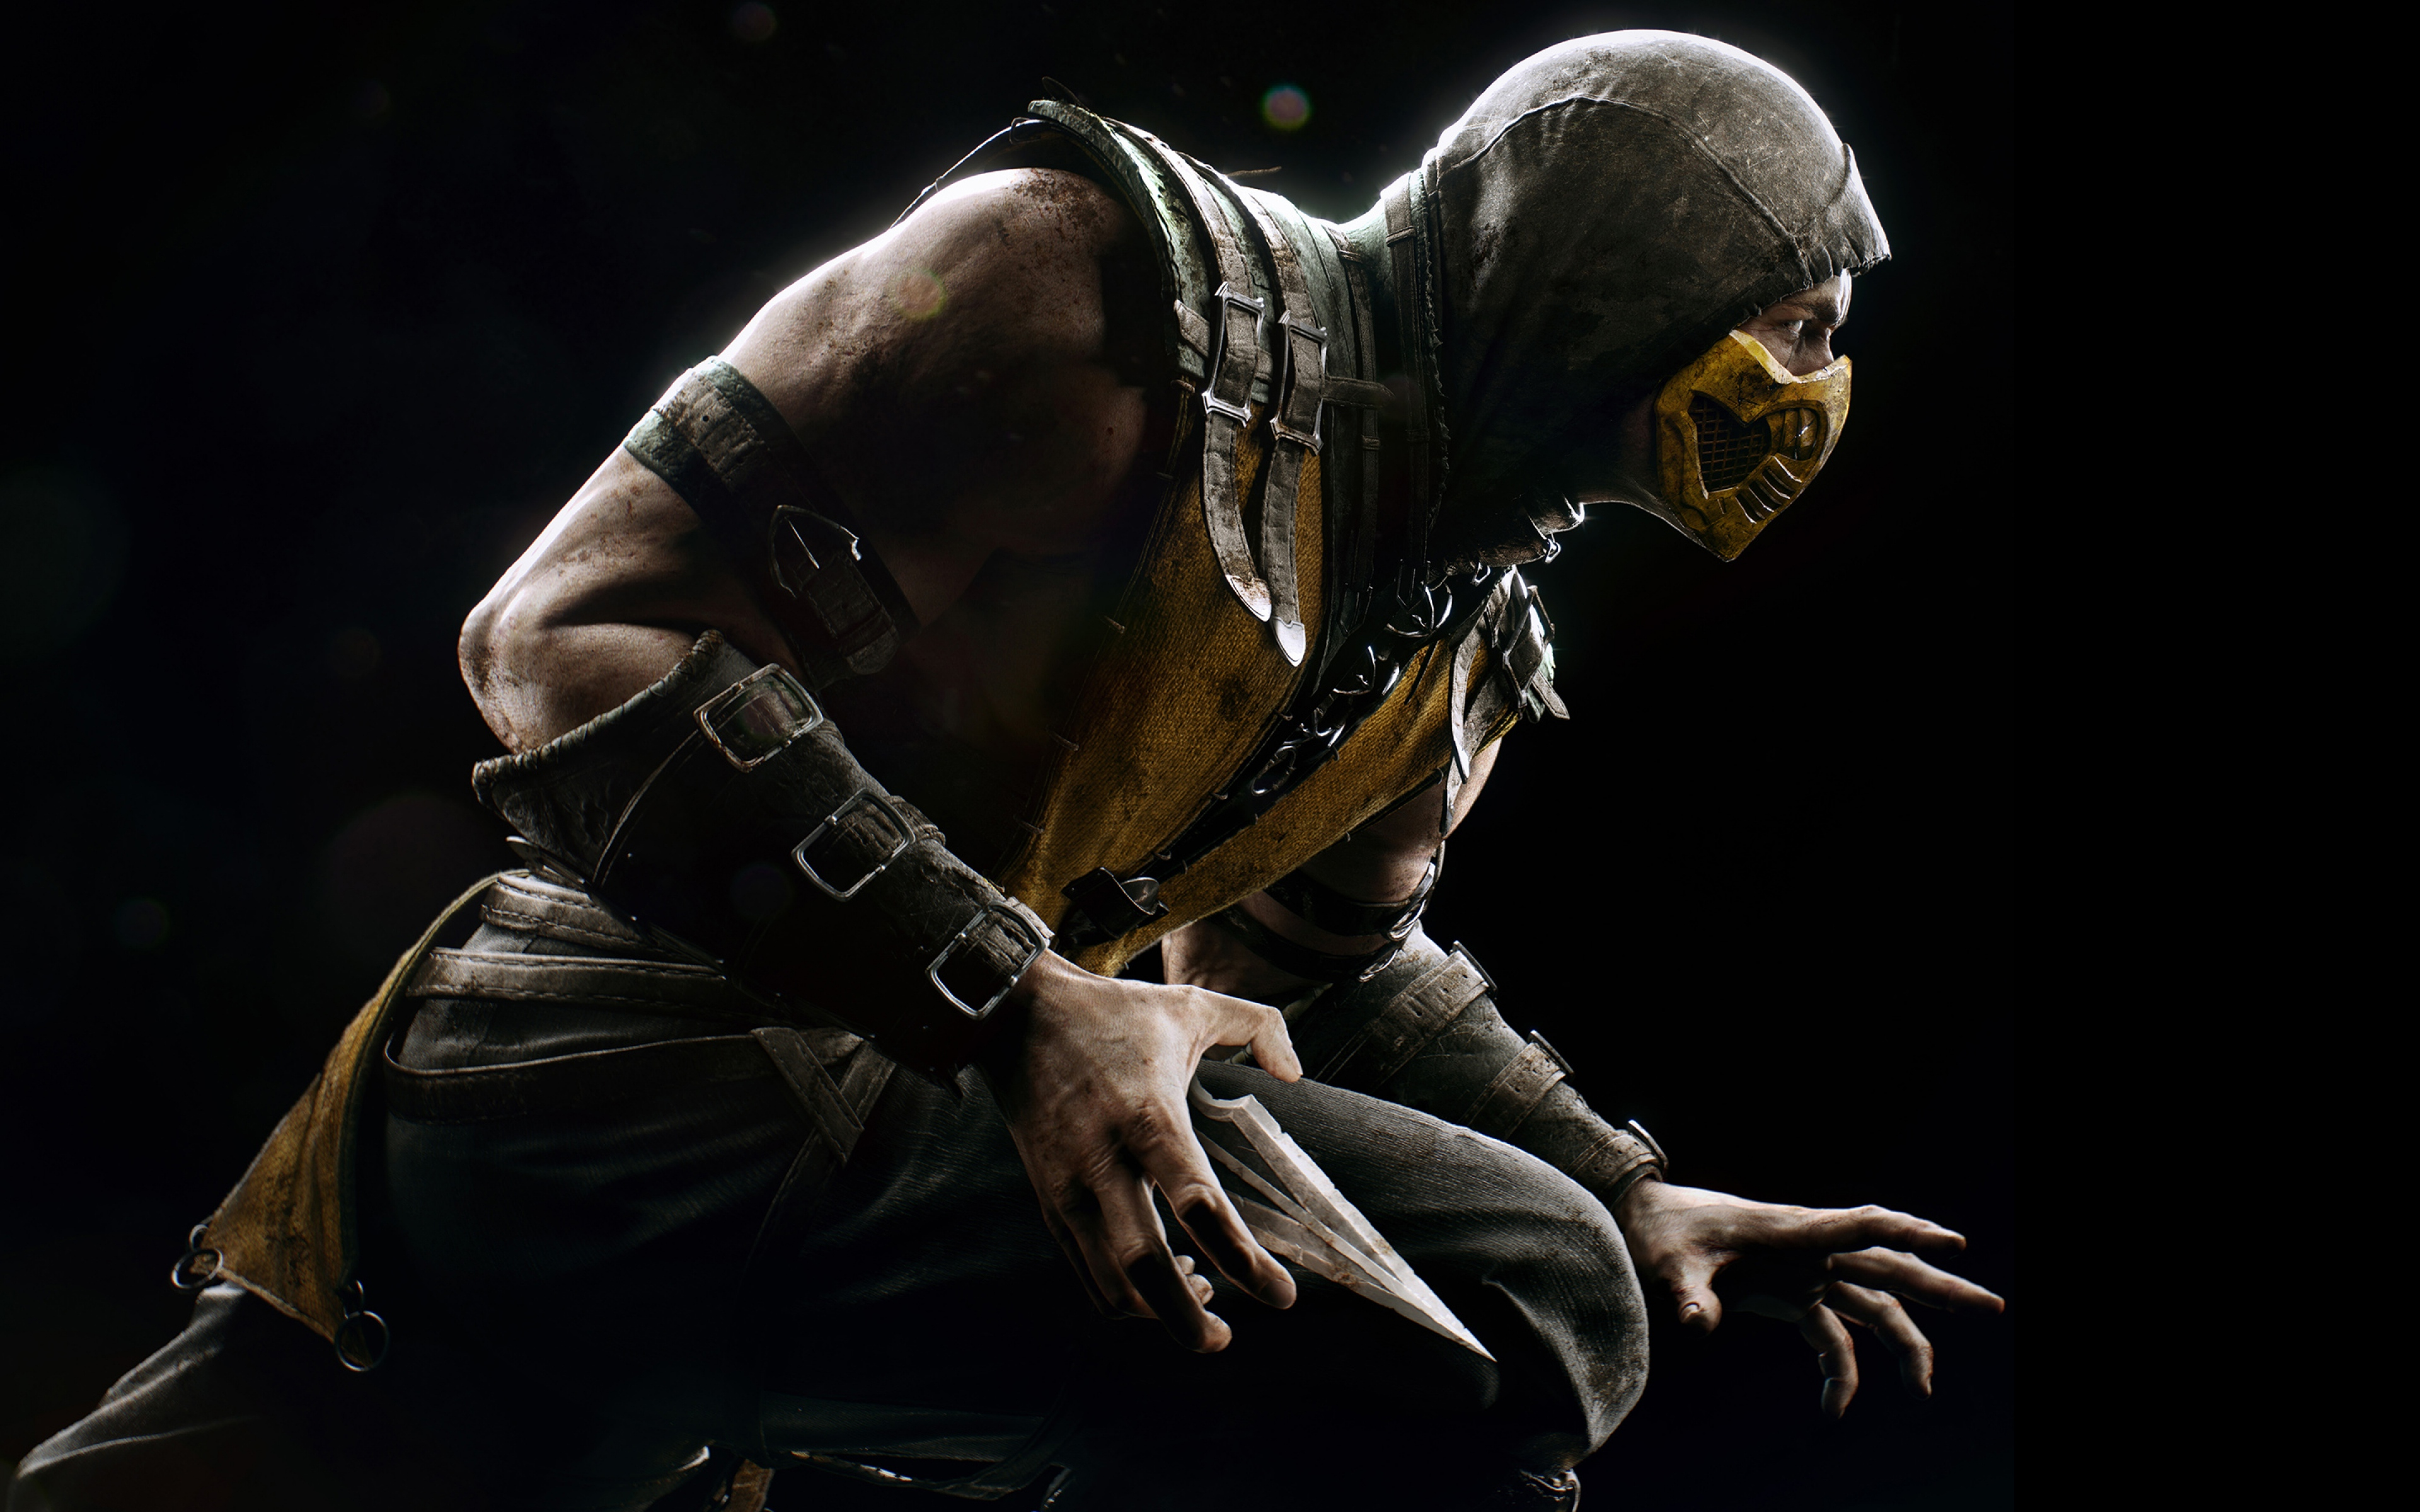 Mortal kombat x gets huge new update; patch notes revealed.